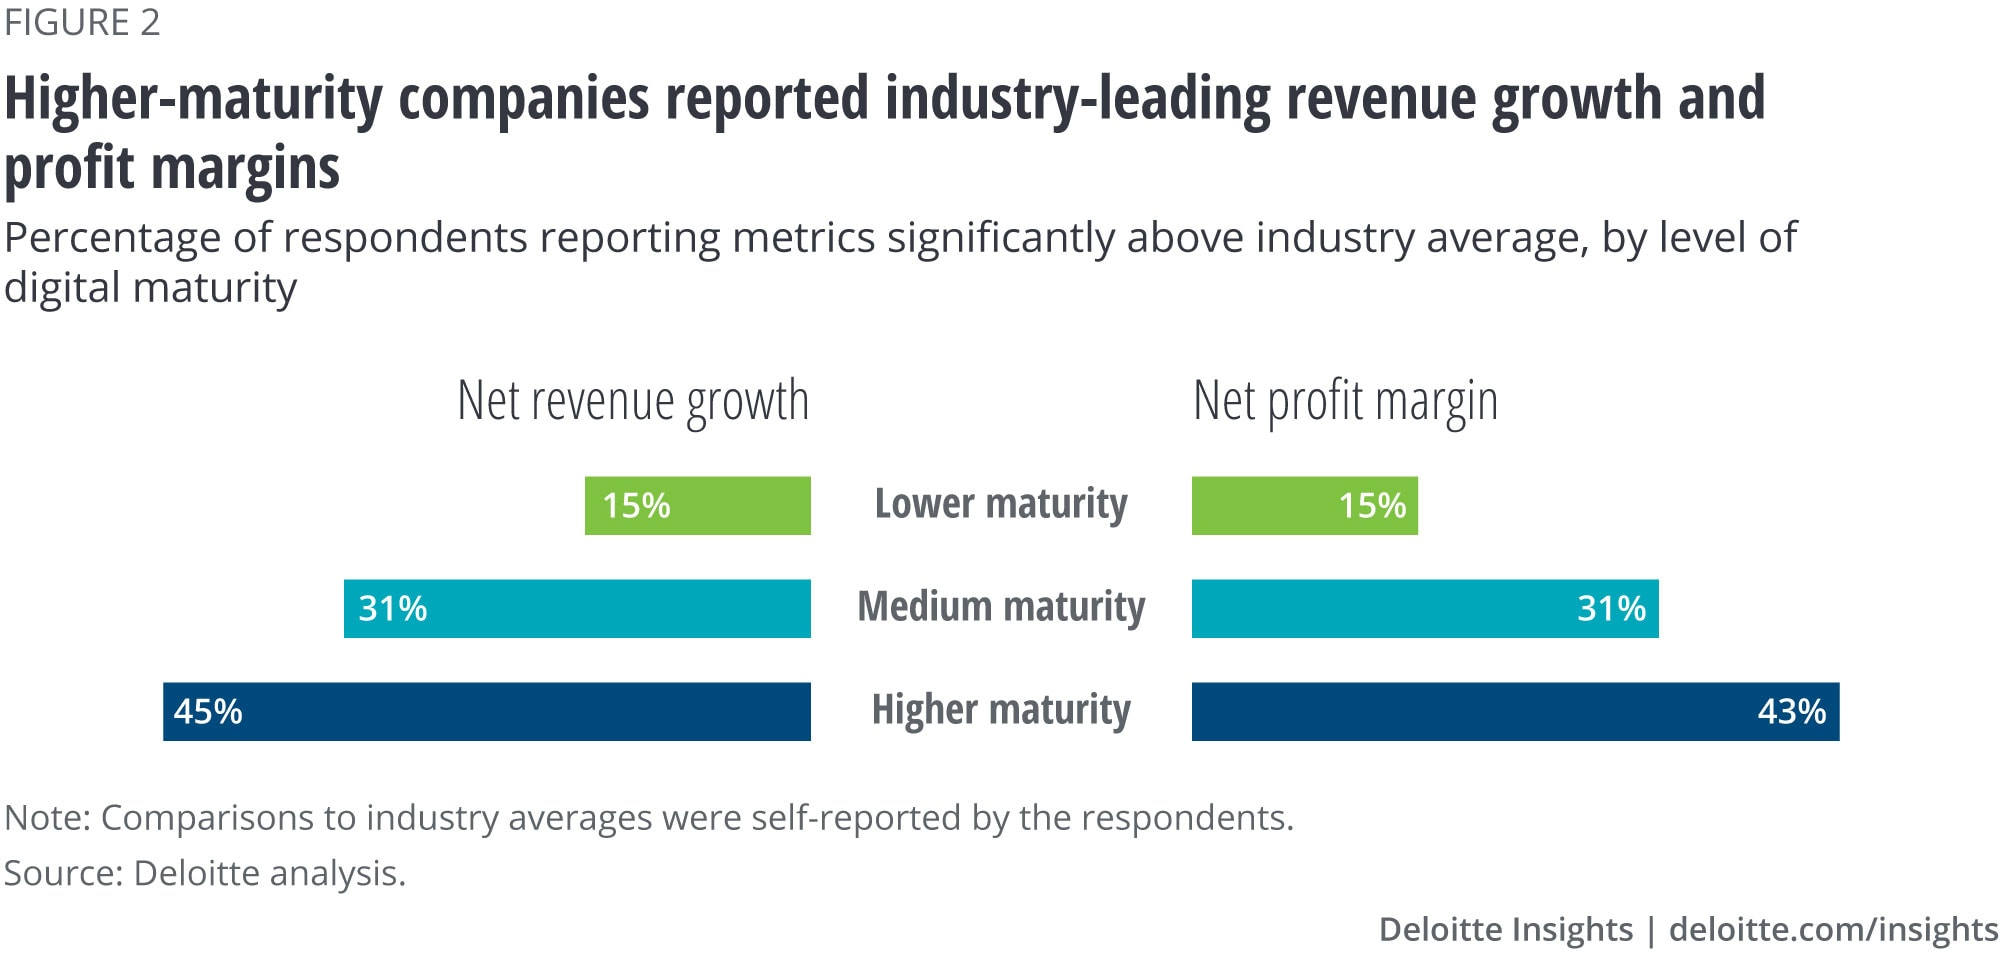 Higher-maturity companies were more likely to report industry-leading net revenue growth and net profit margins